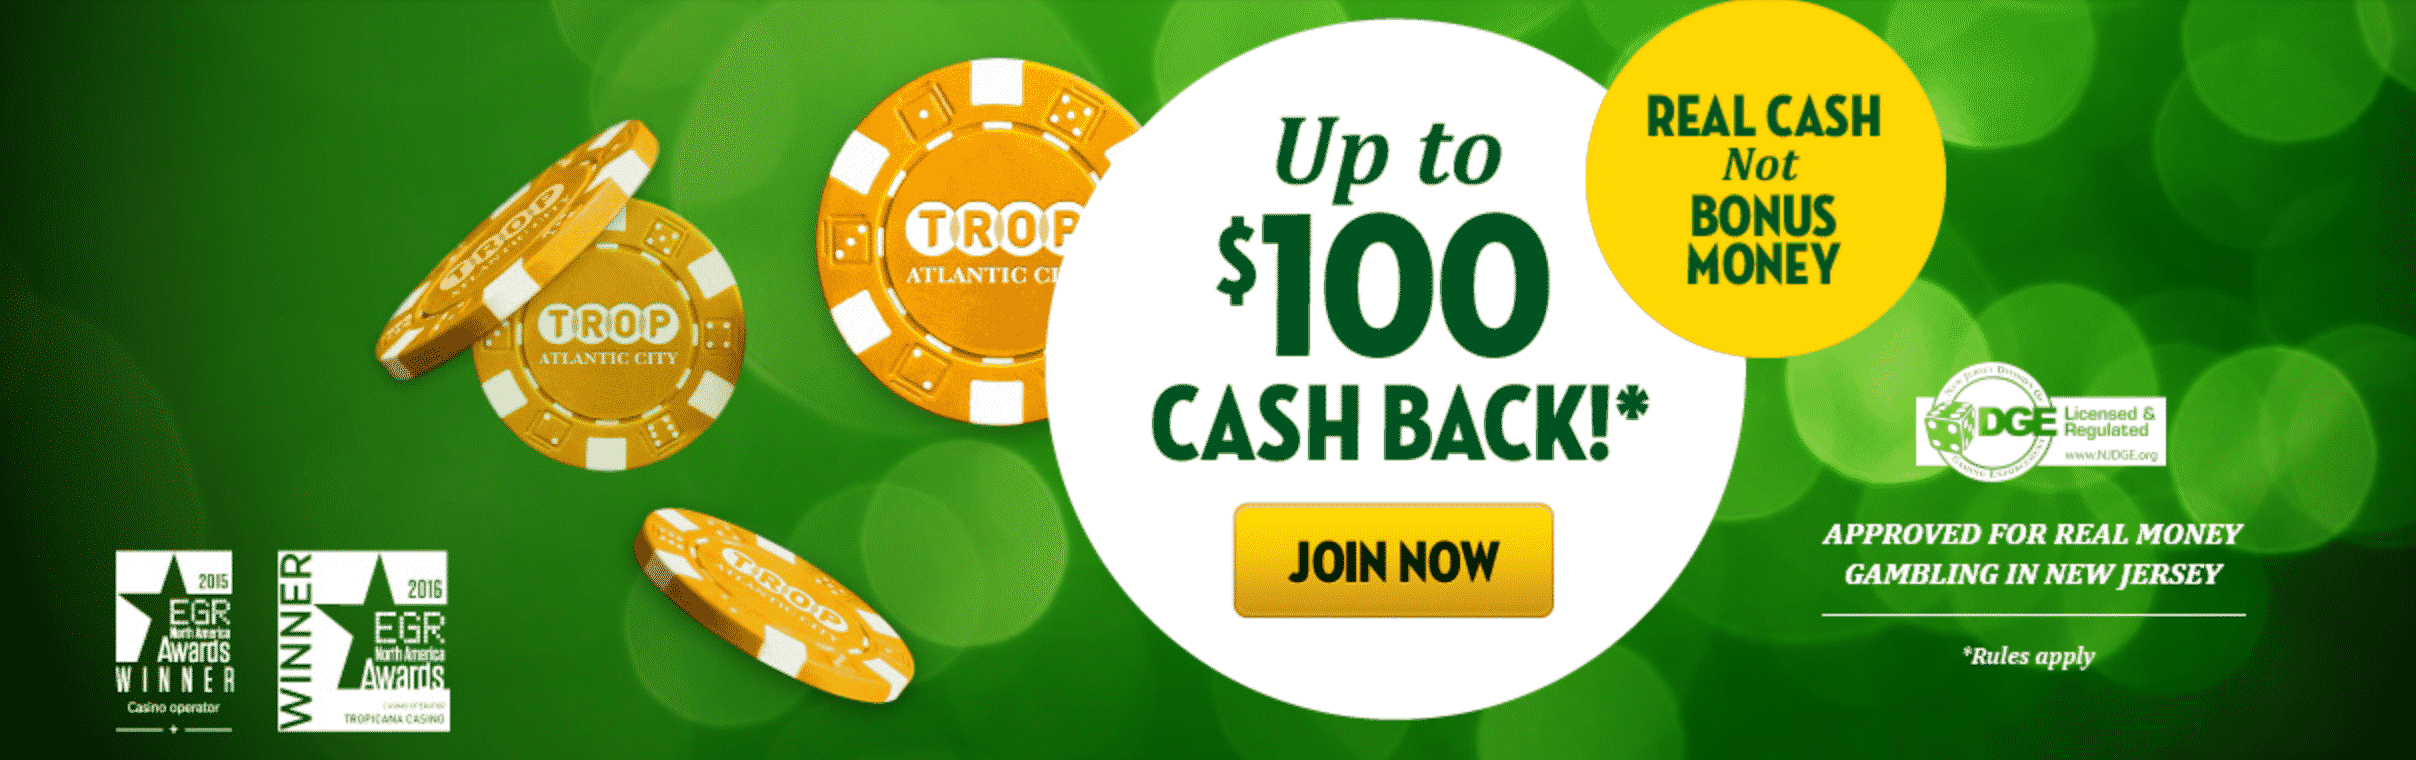 Tropicana online casino review gambling card game crossword clue